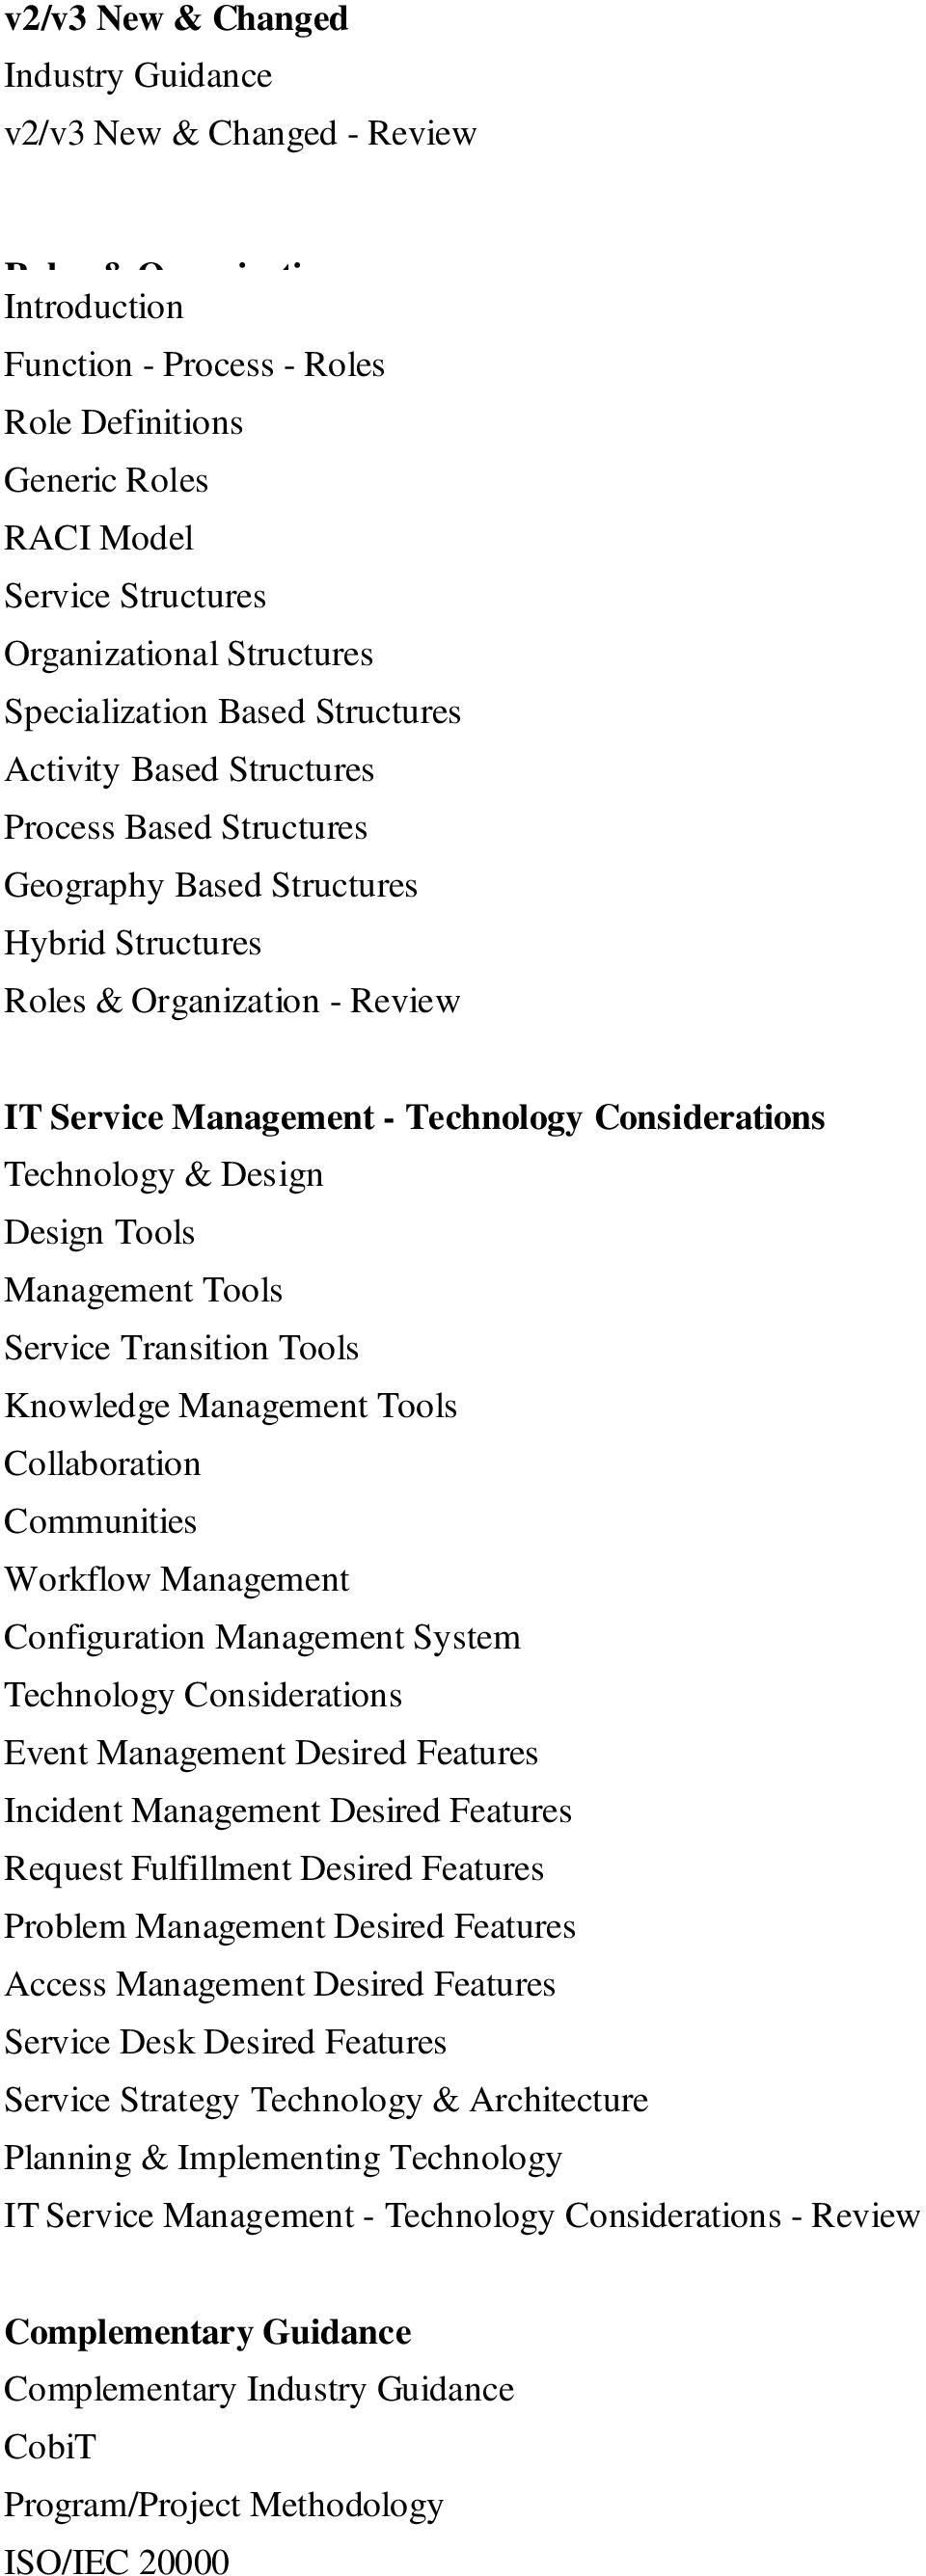 Technology Considerations Technology & Design Design Tools Management Tools Service Transition Tools Knowledge Management Tools Collaboration Communities Workflow Management Configuration Management